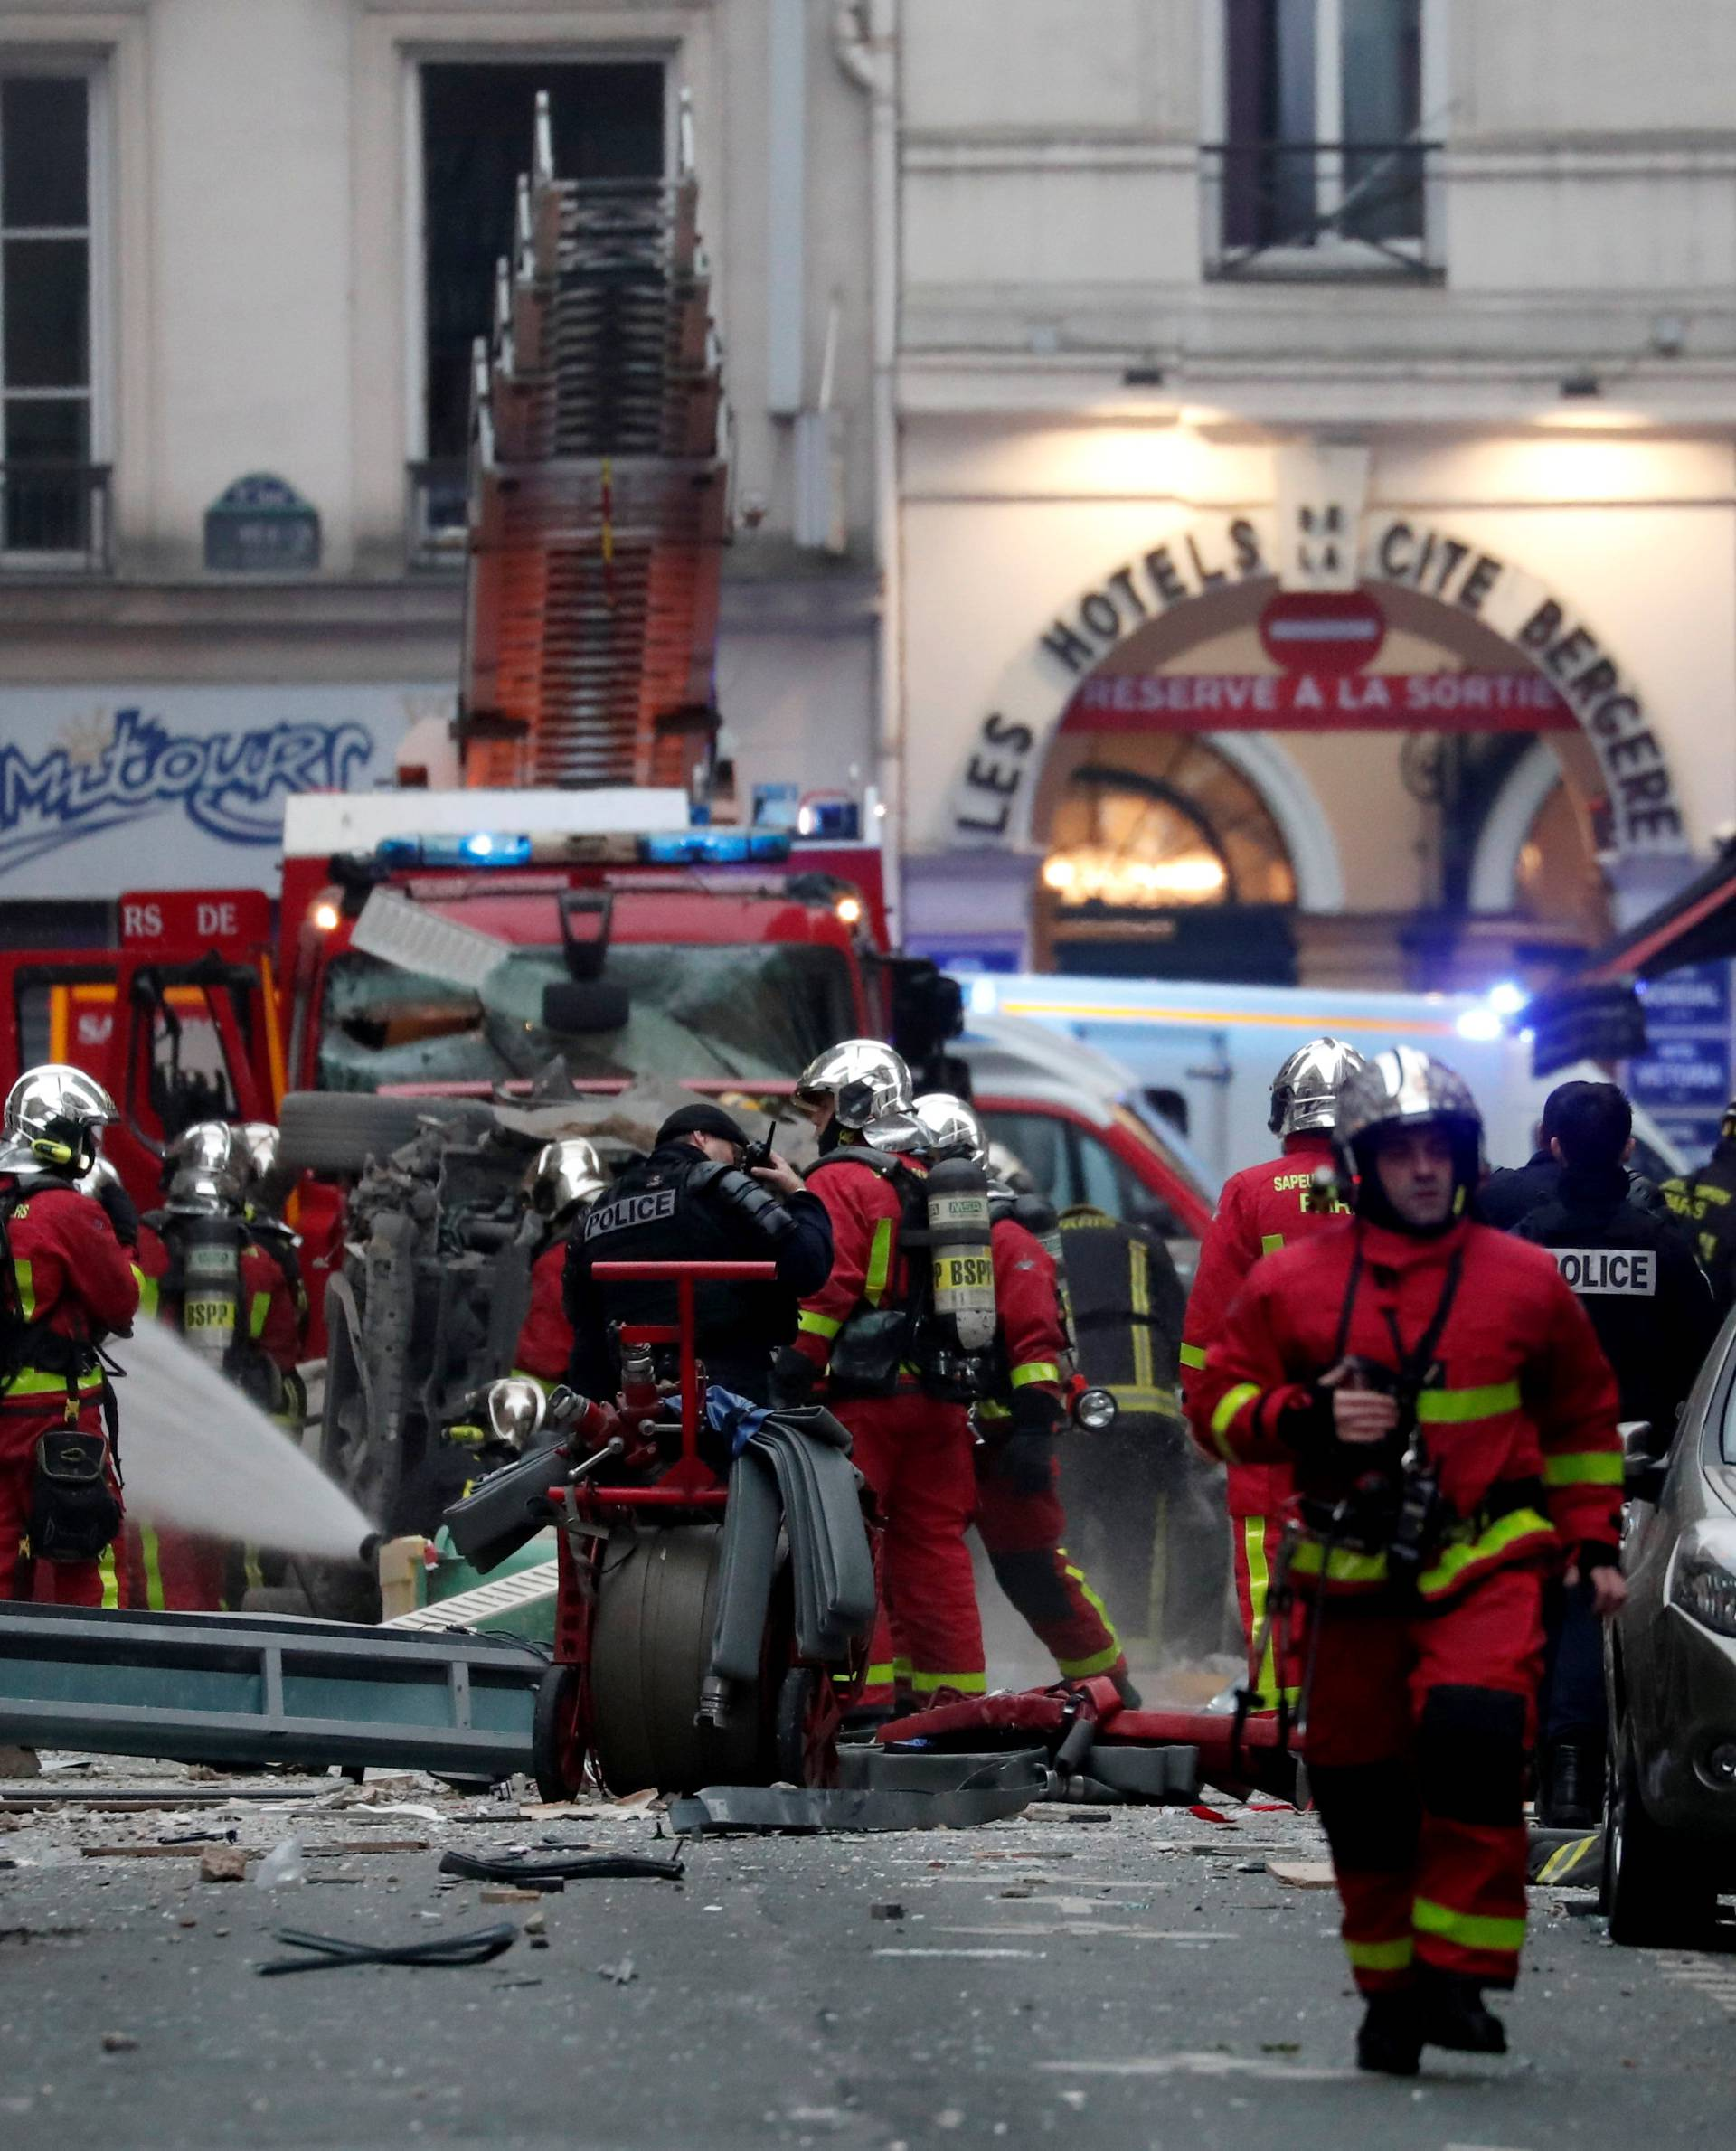 Firemen and police officers work at the site of an explosion in a bakery shop in the 9th District in Paris